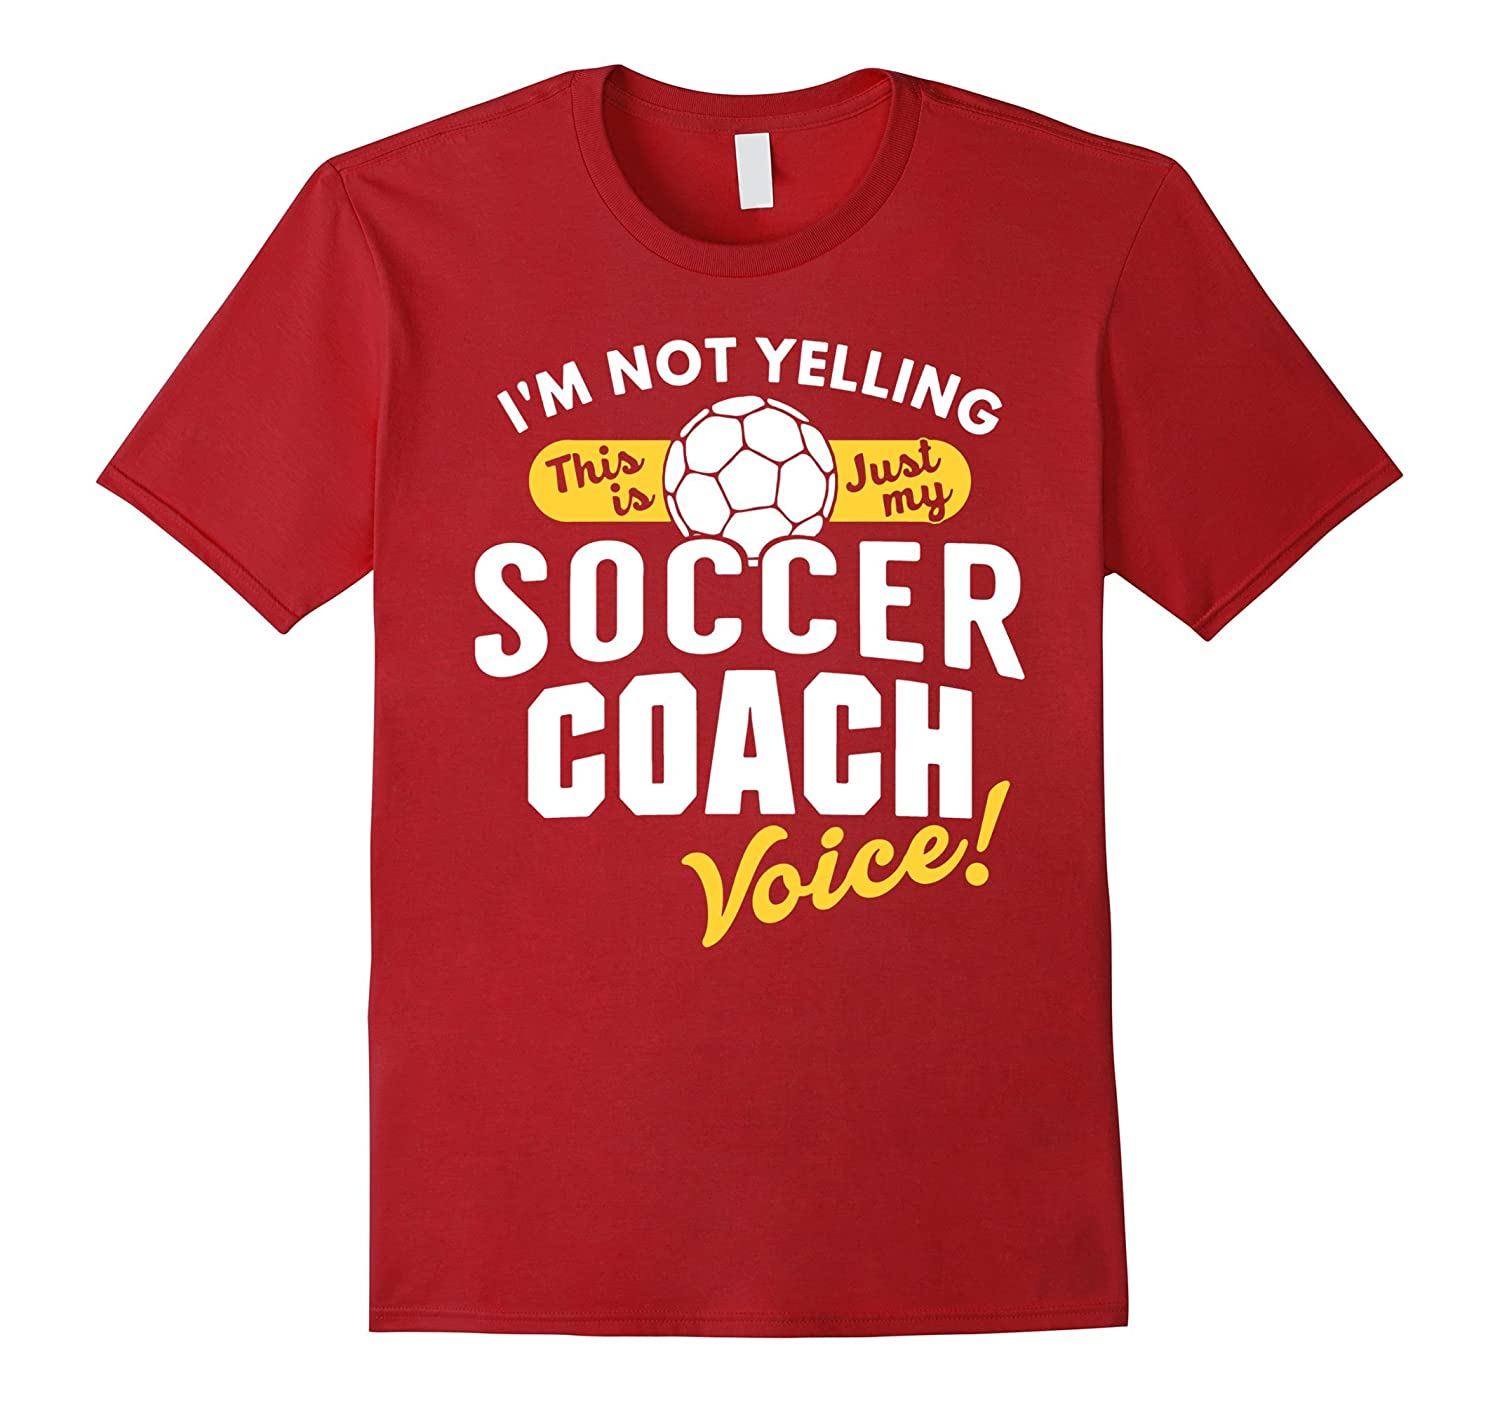 Soccer Coach Voice Shirt Funny Slogan Quote Youth Sports-CD